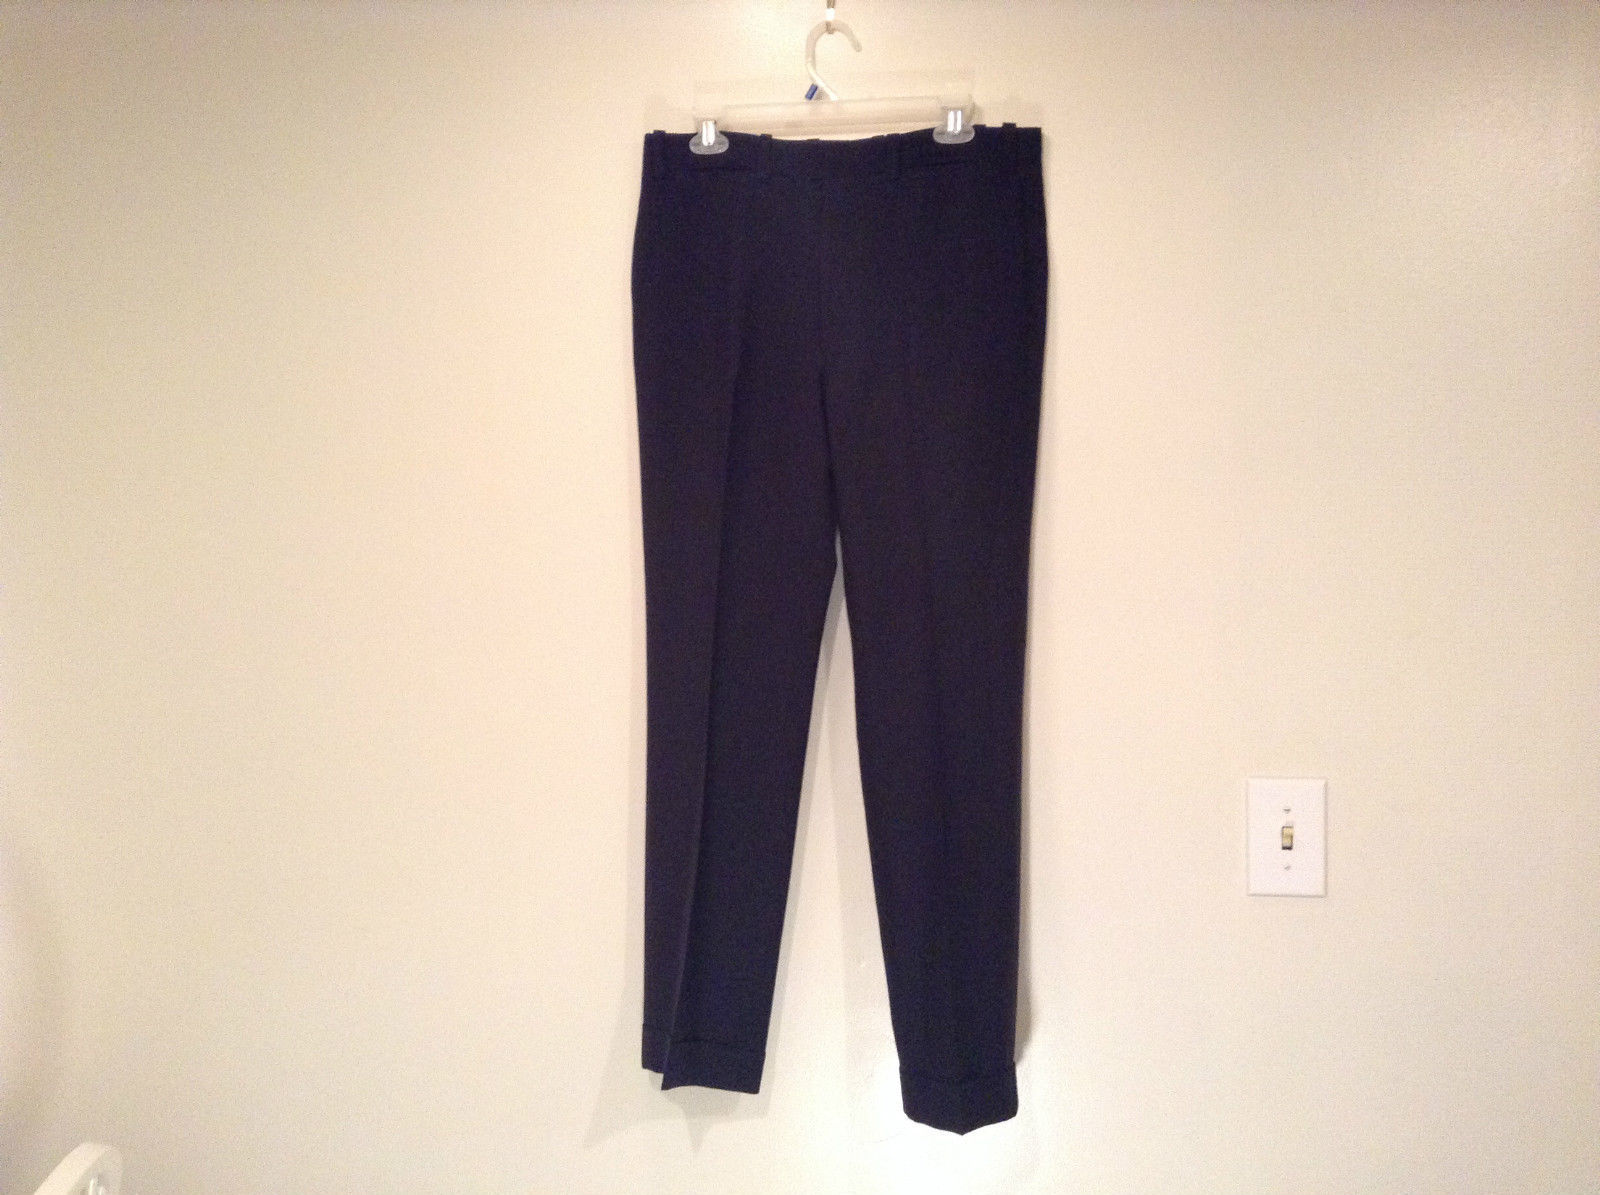 Dark Blue Black Dress Pants No Tags High Quality Fabric Measurements Below